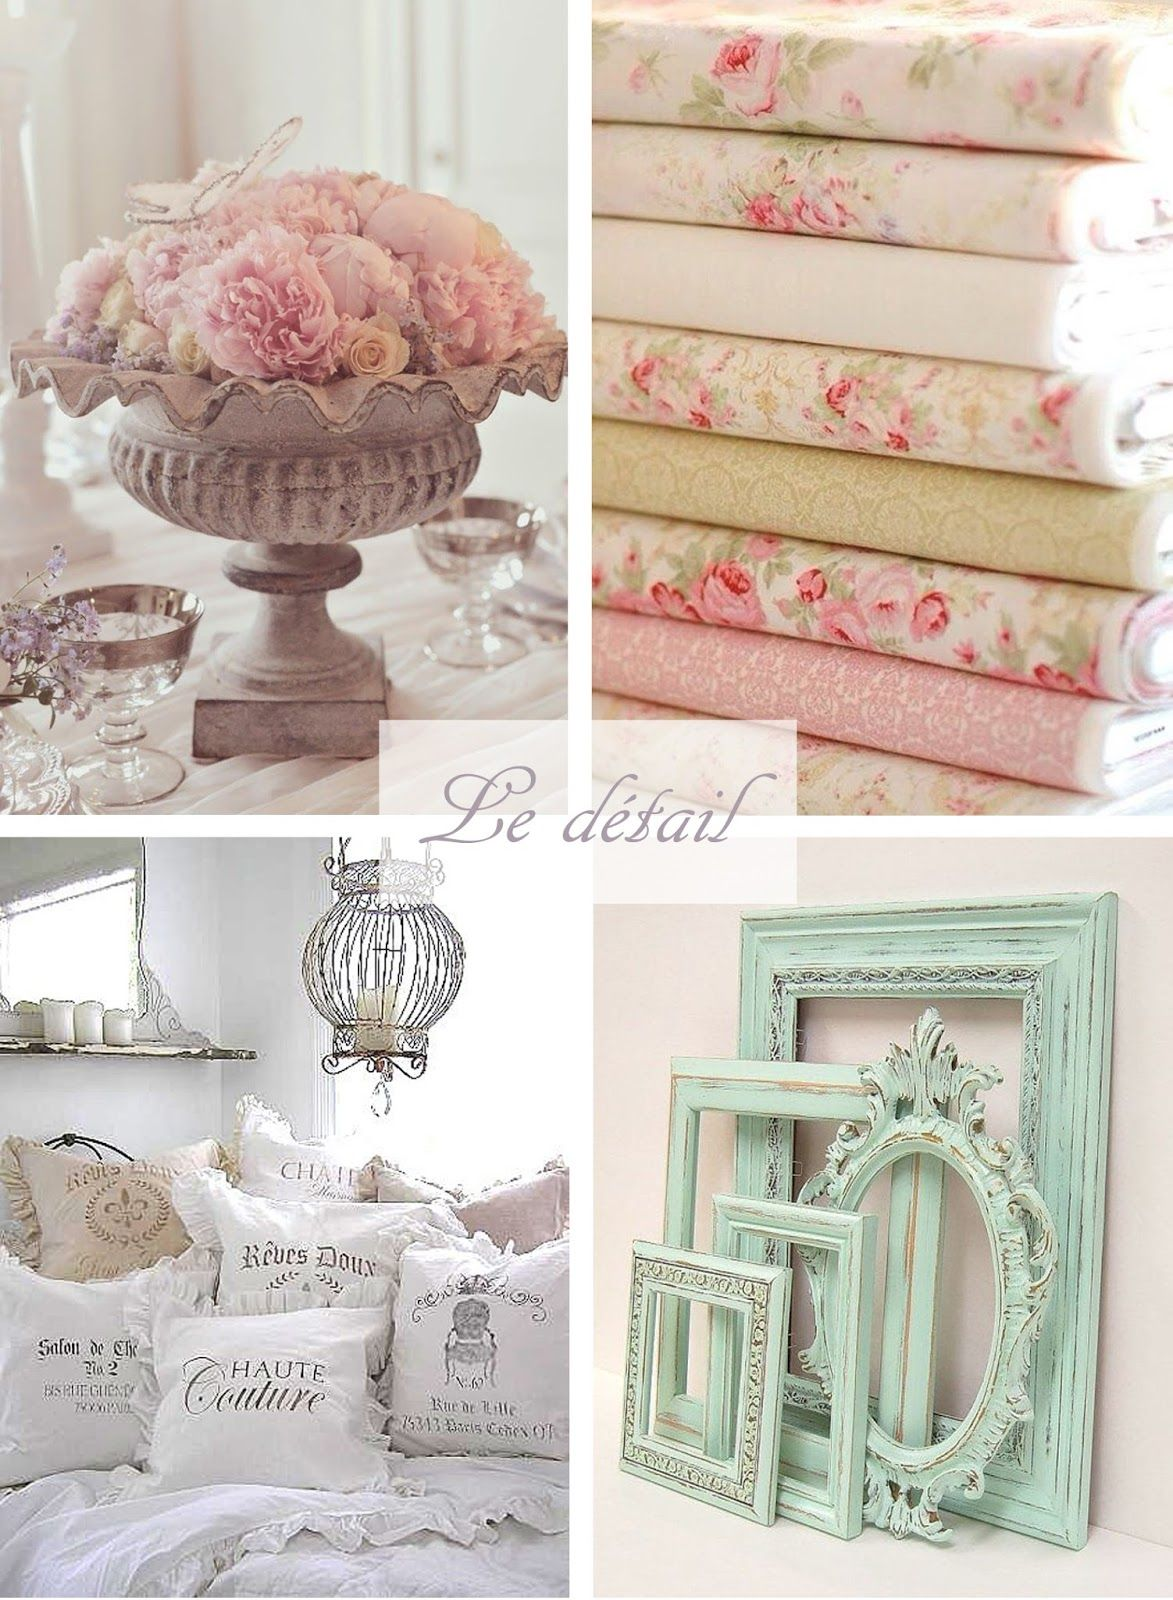 mcd inspiration pour une chambre shabby chic. Black Bedroom Furniture Sets. Home Design Ideas